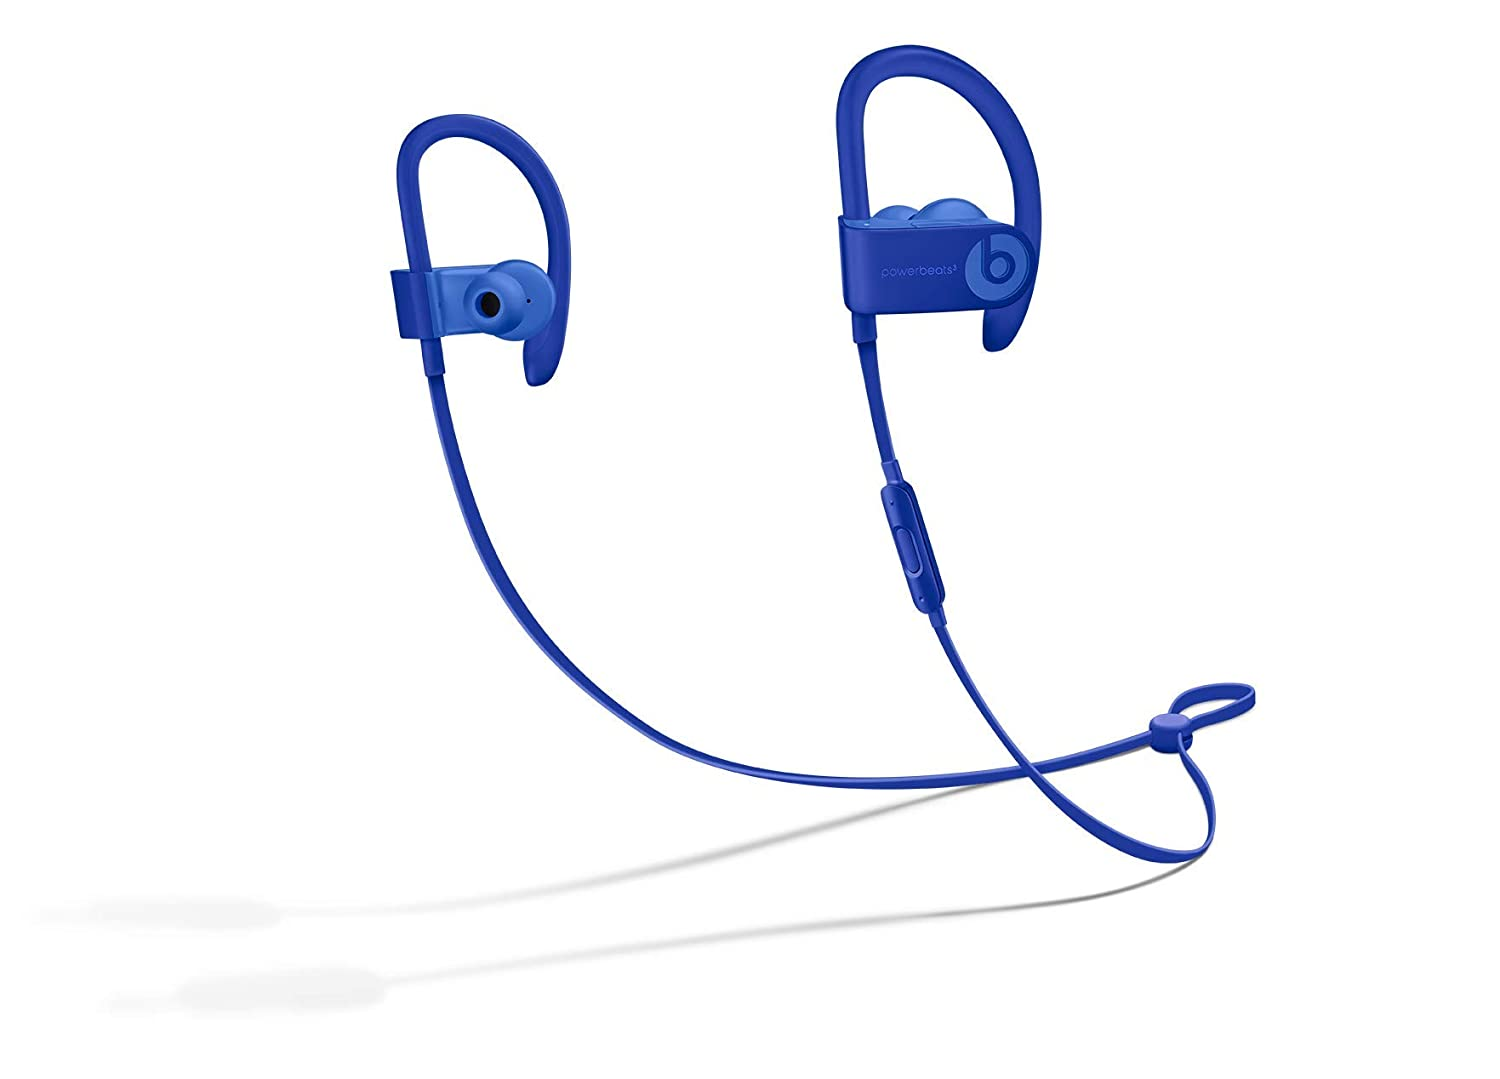 3109cebb227 Amazon.com: Powerbeats3 Wireless Earphones - Neighborhood Collection - Break  Blue